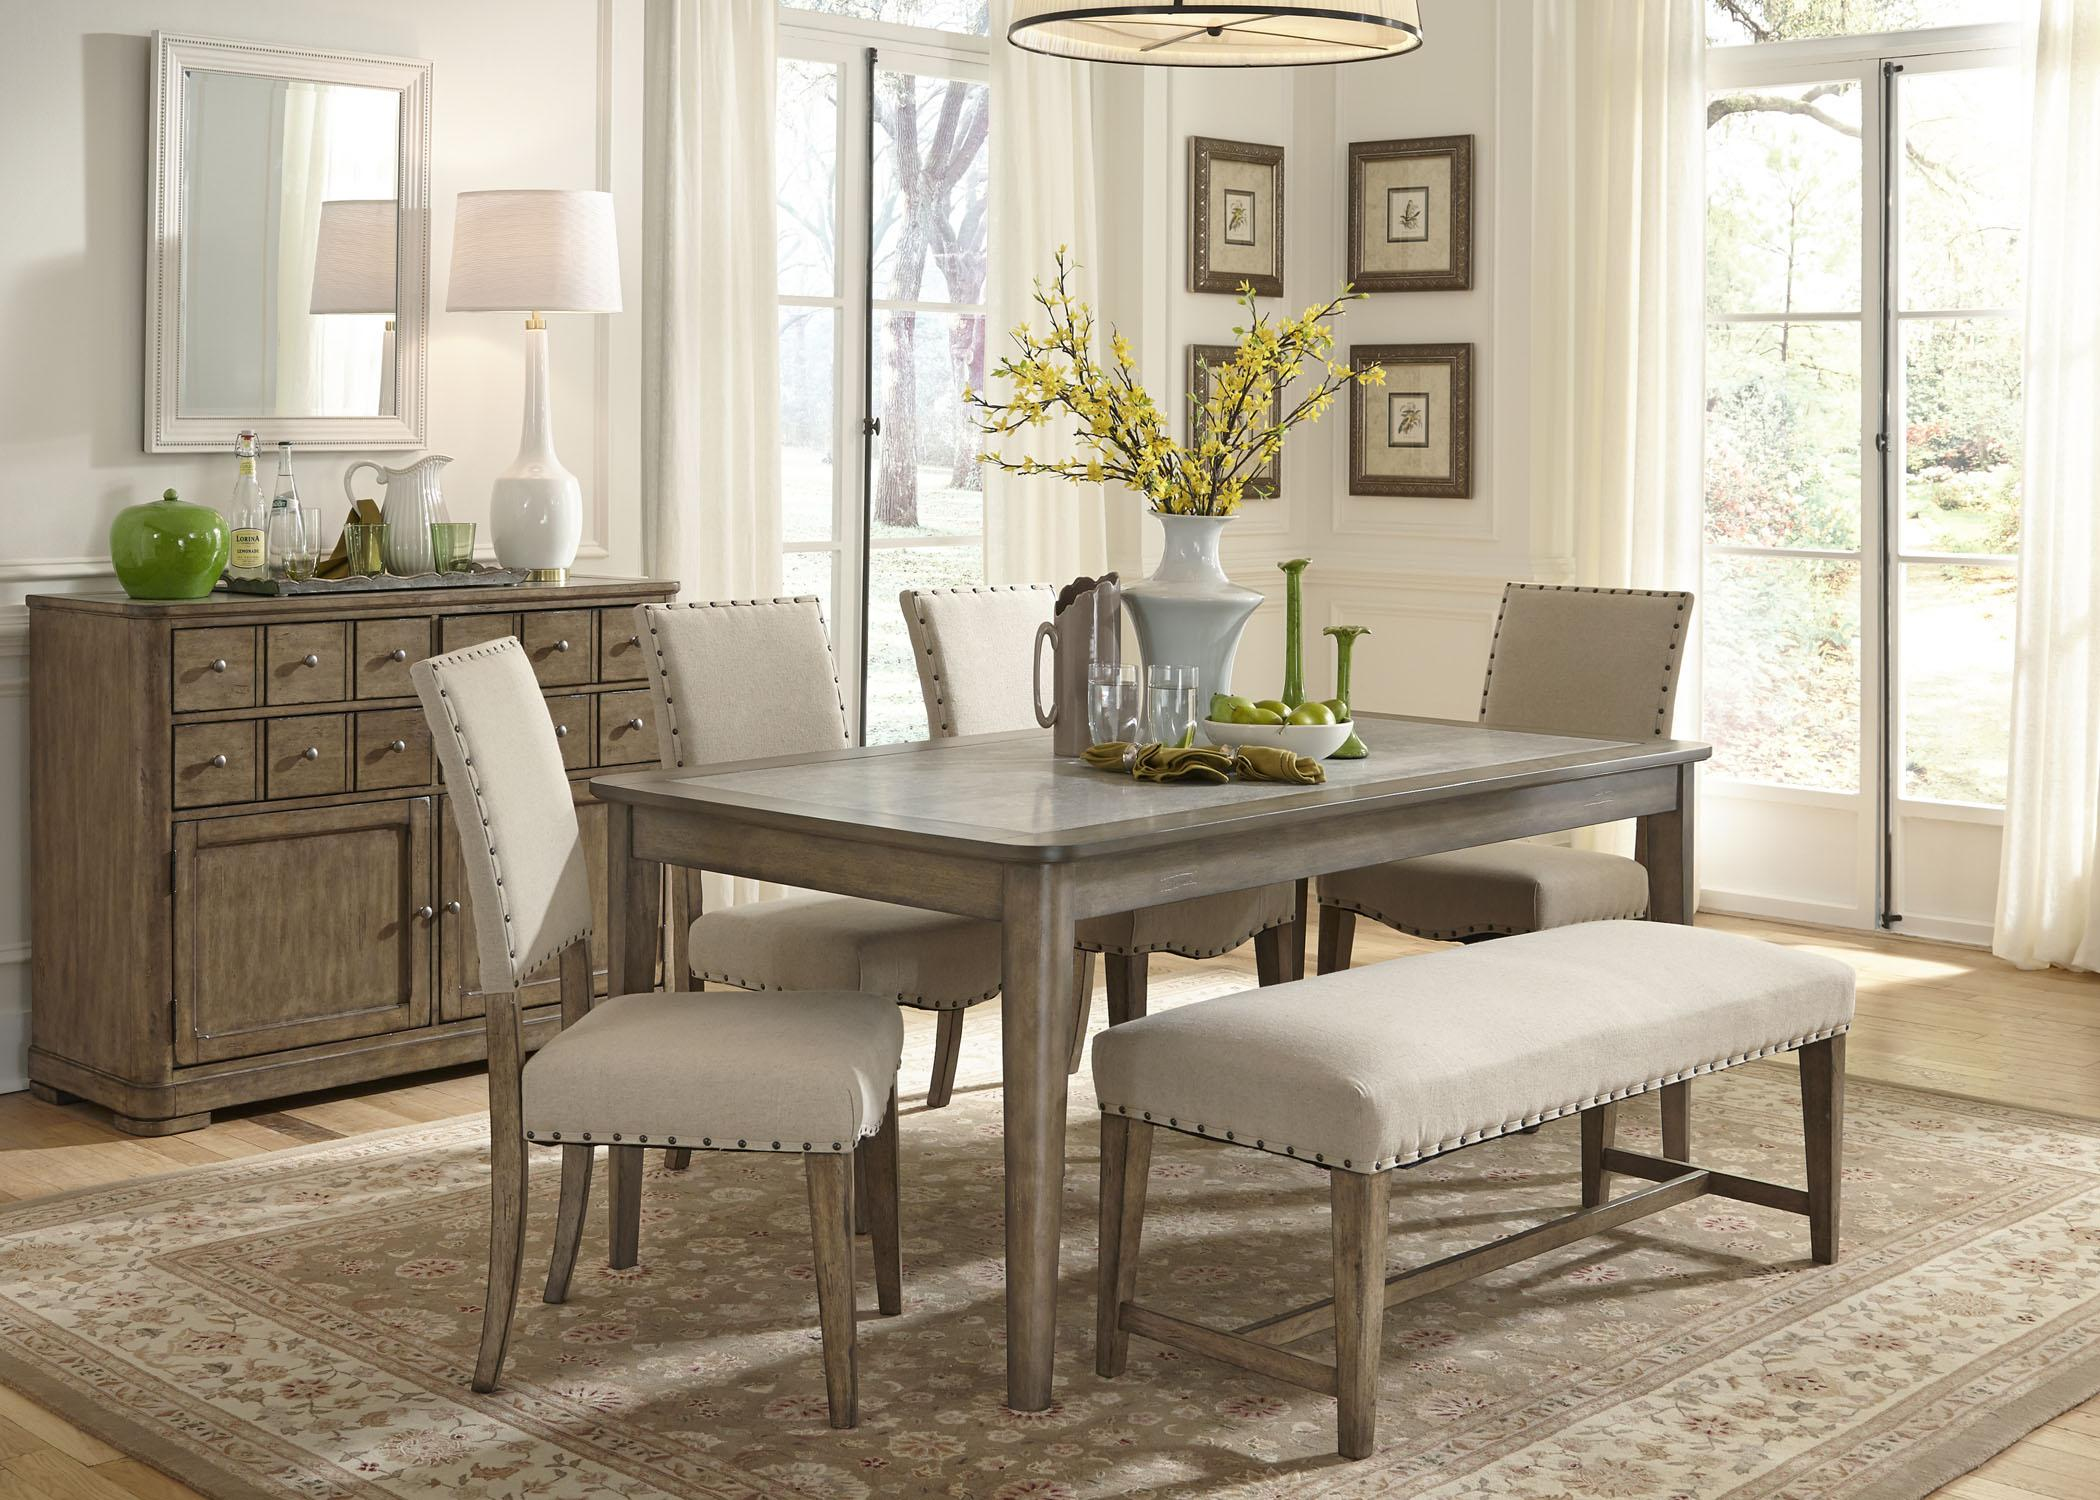 Weatherford Rustic Casual 6 Piece Dining Table And Chairs Set With Bench